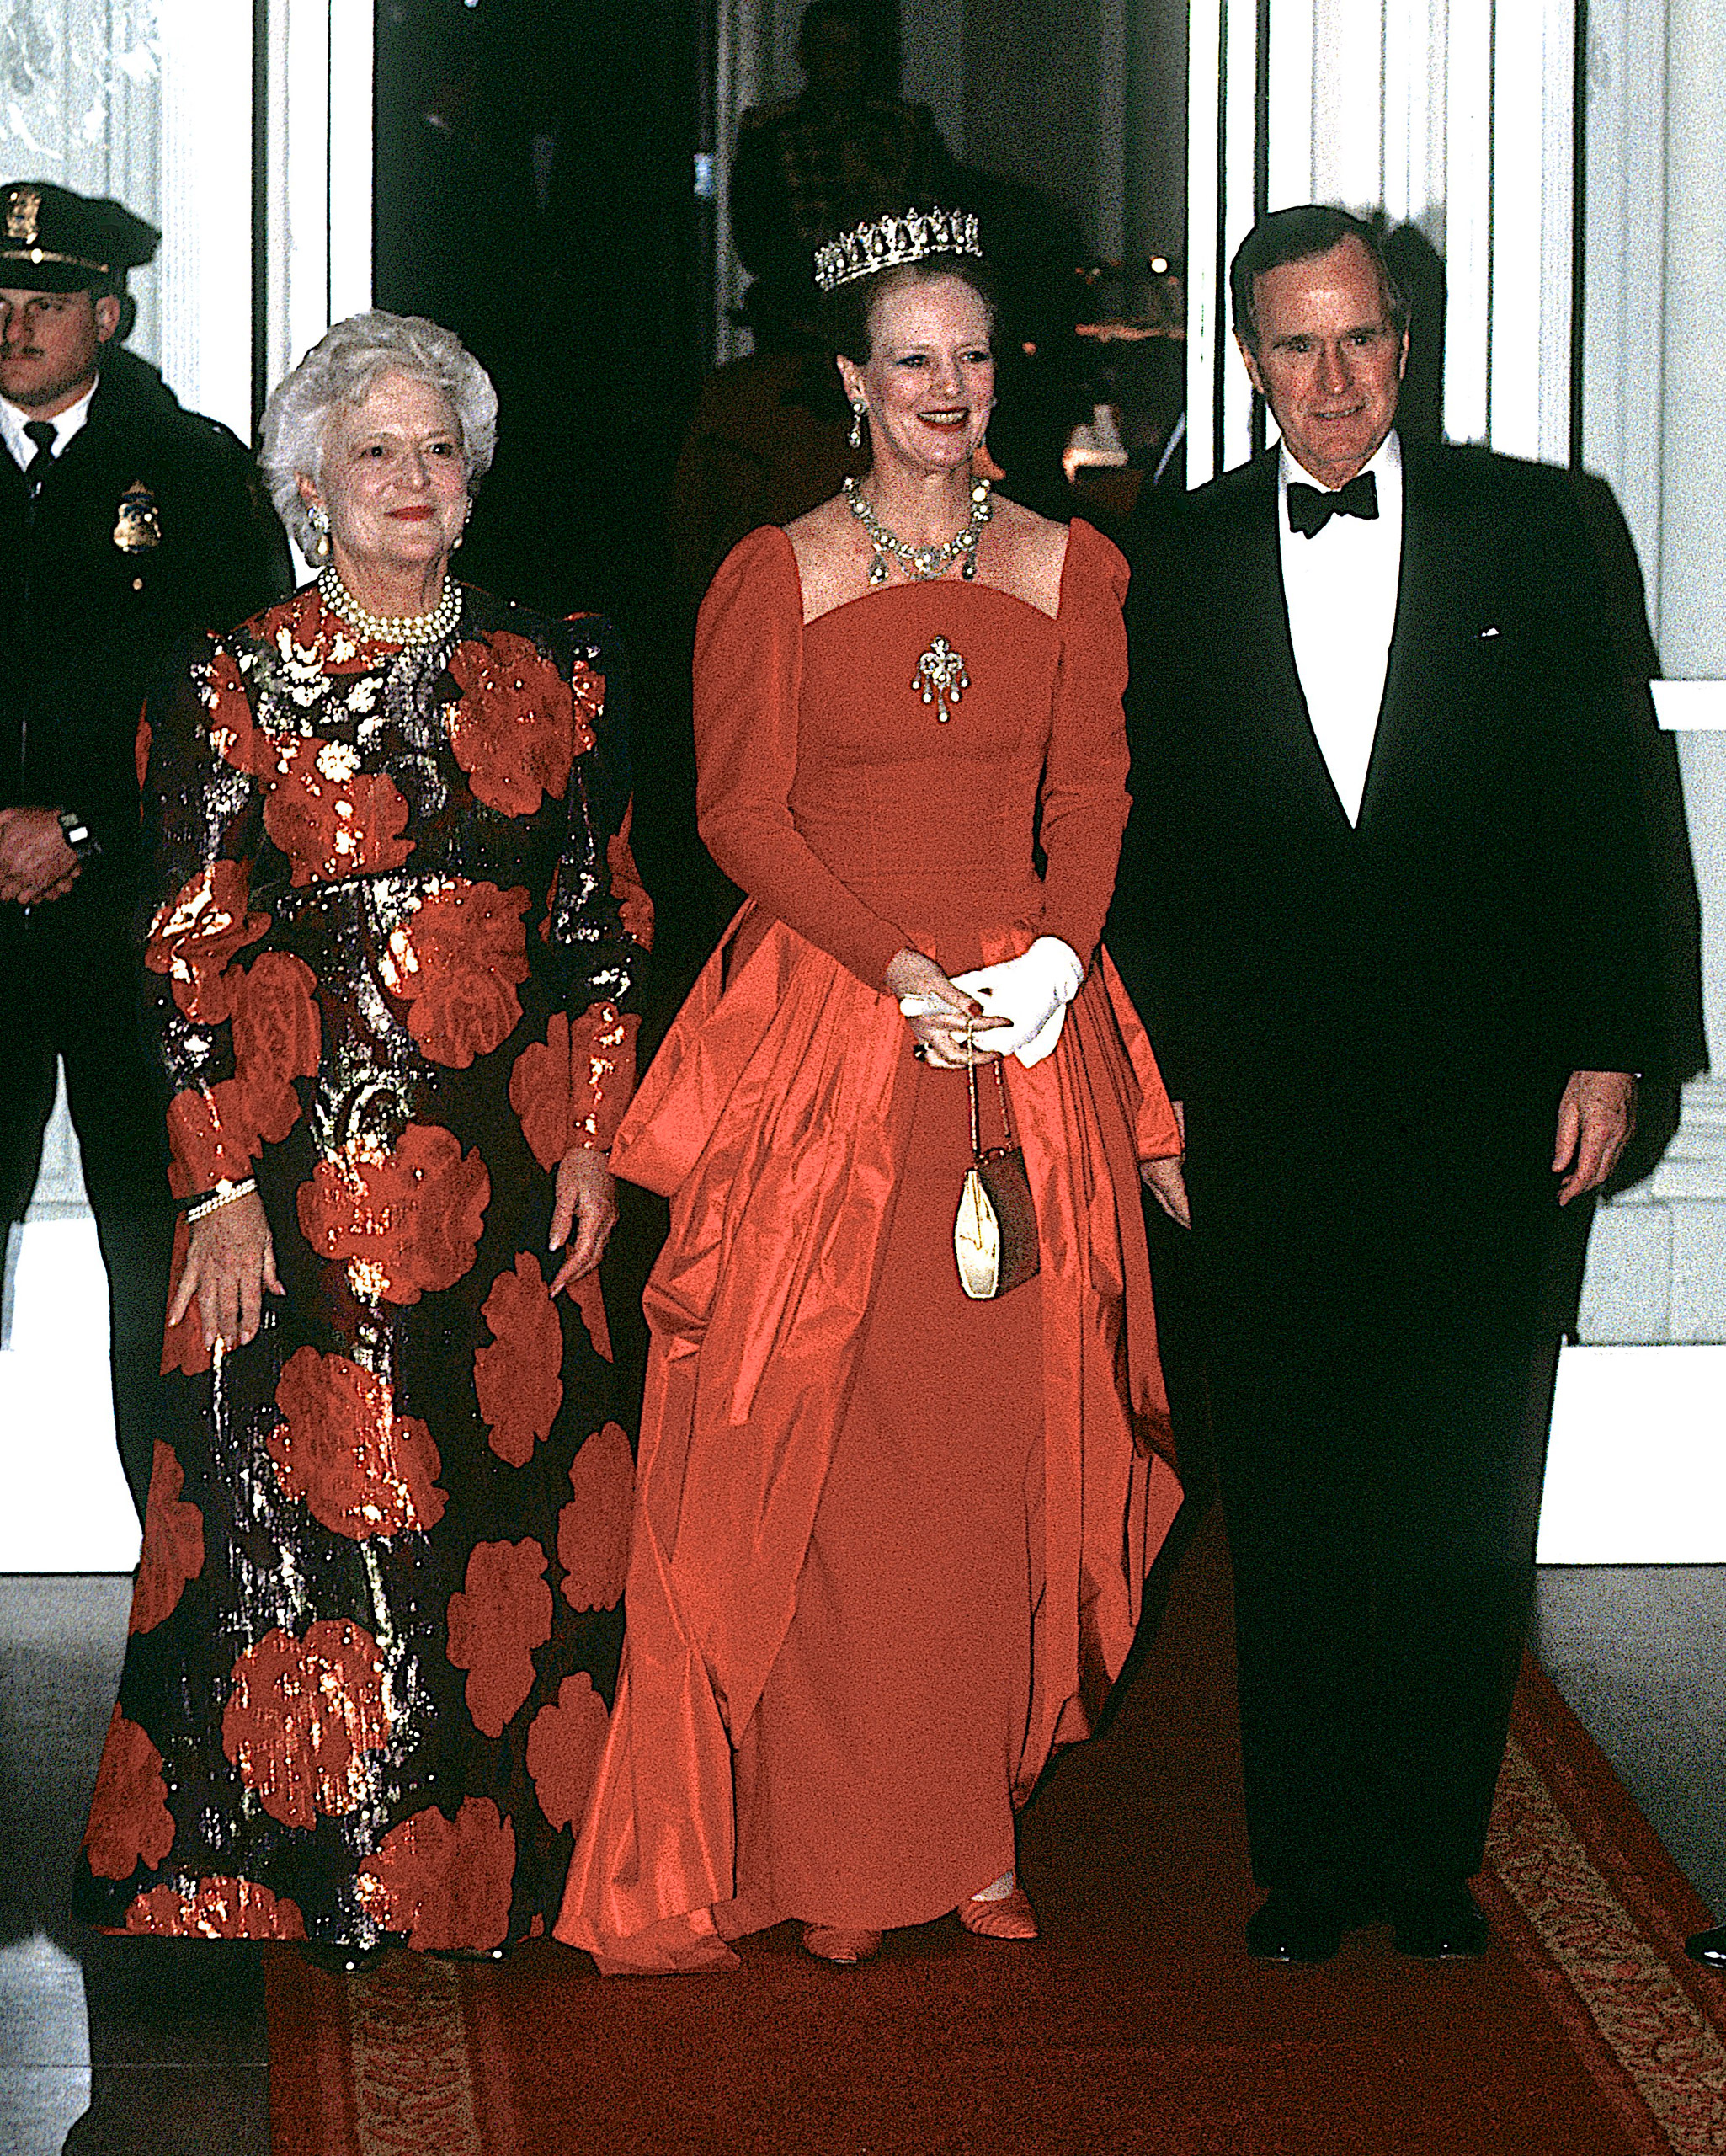 President George H.W. Bush and his wife Barbara pose at the entrance to the North portico of the White House with Queen Margrethe II of Denmark during their arrival for the evening's state dinner. Feb. 20, 1991.